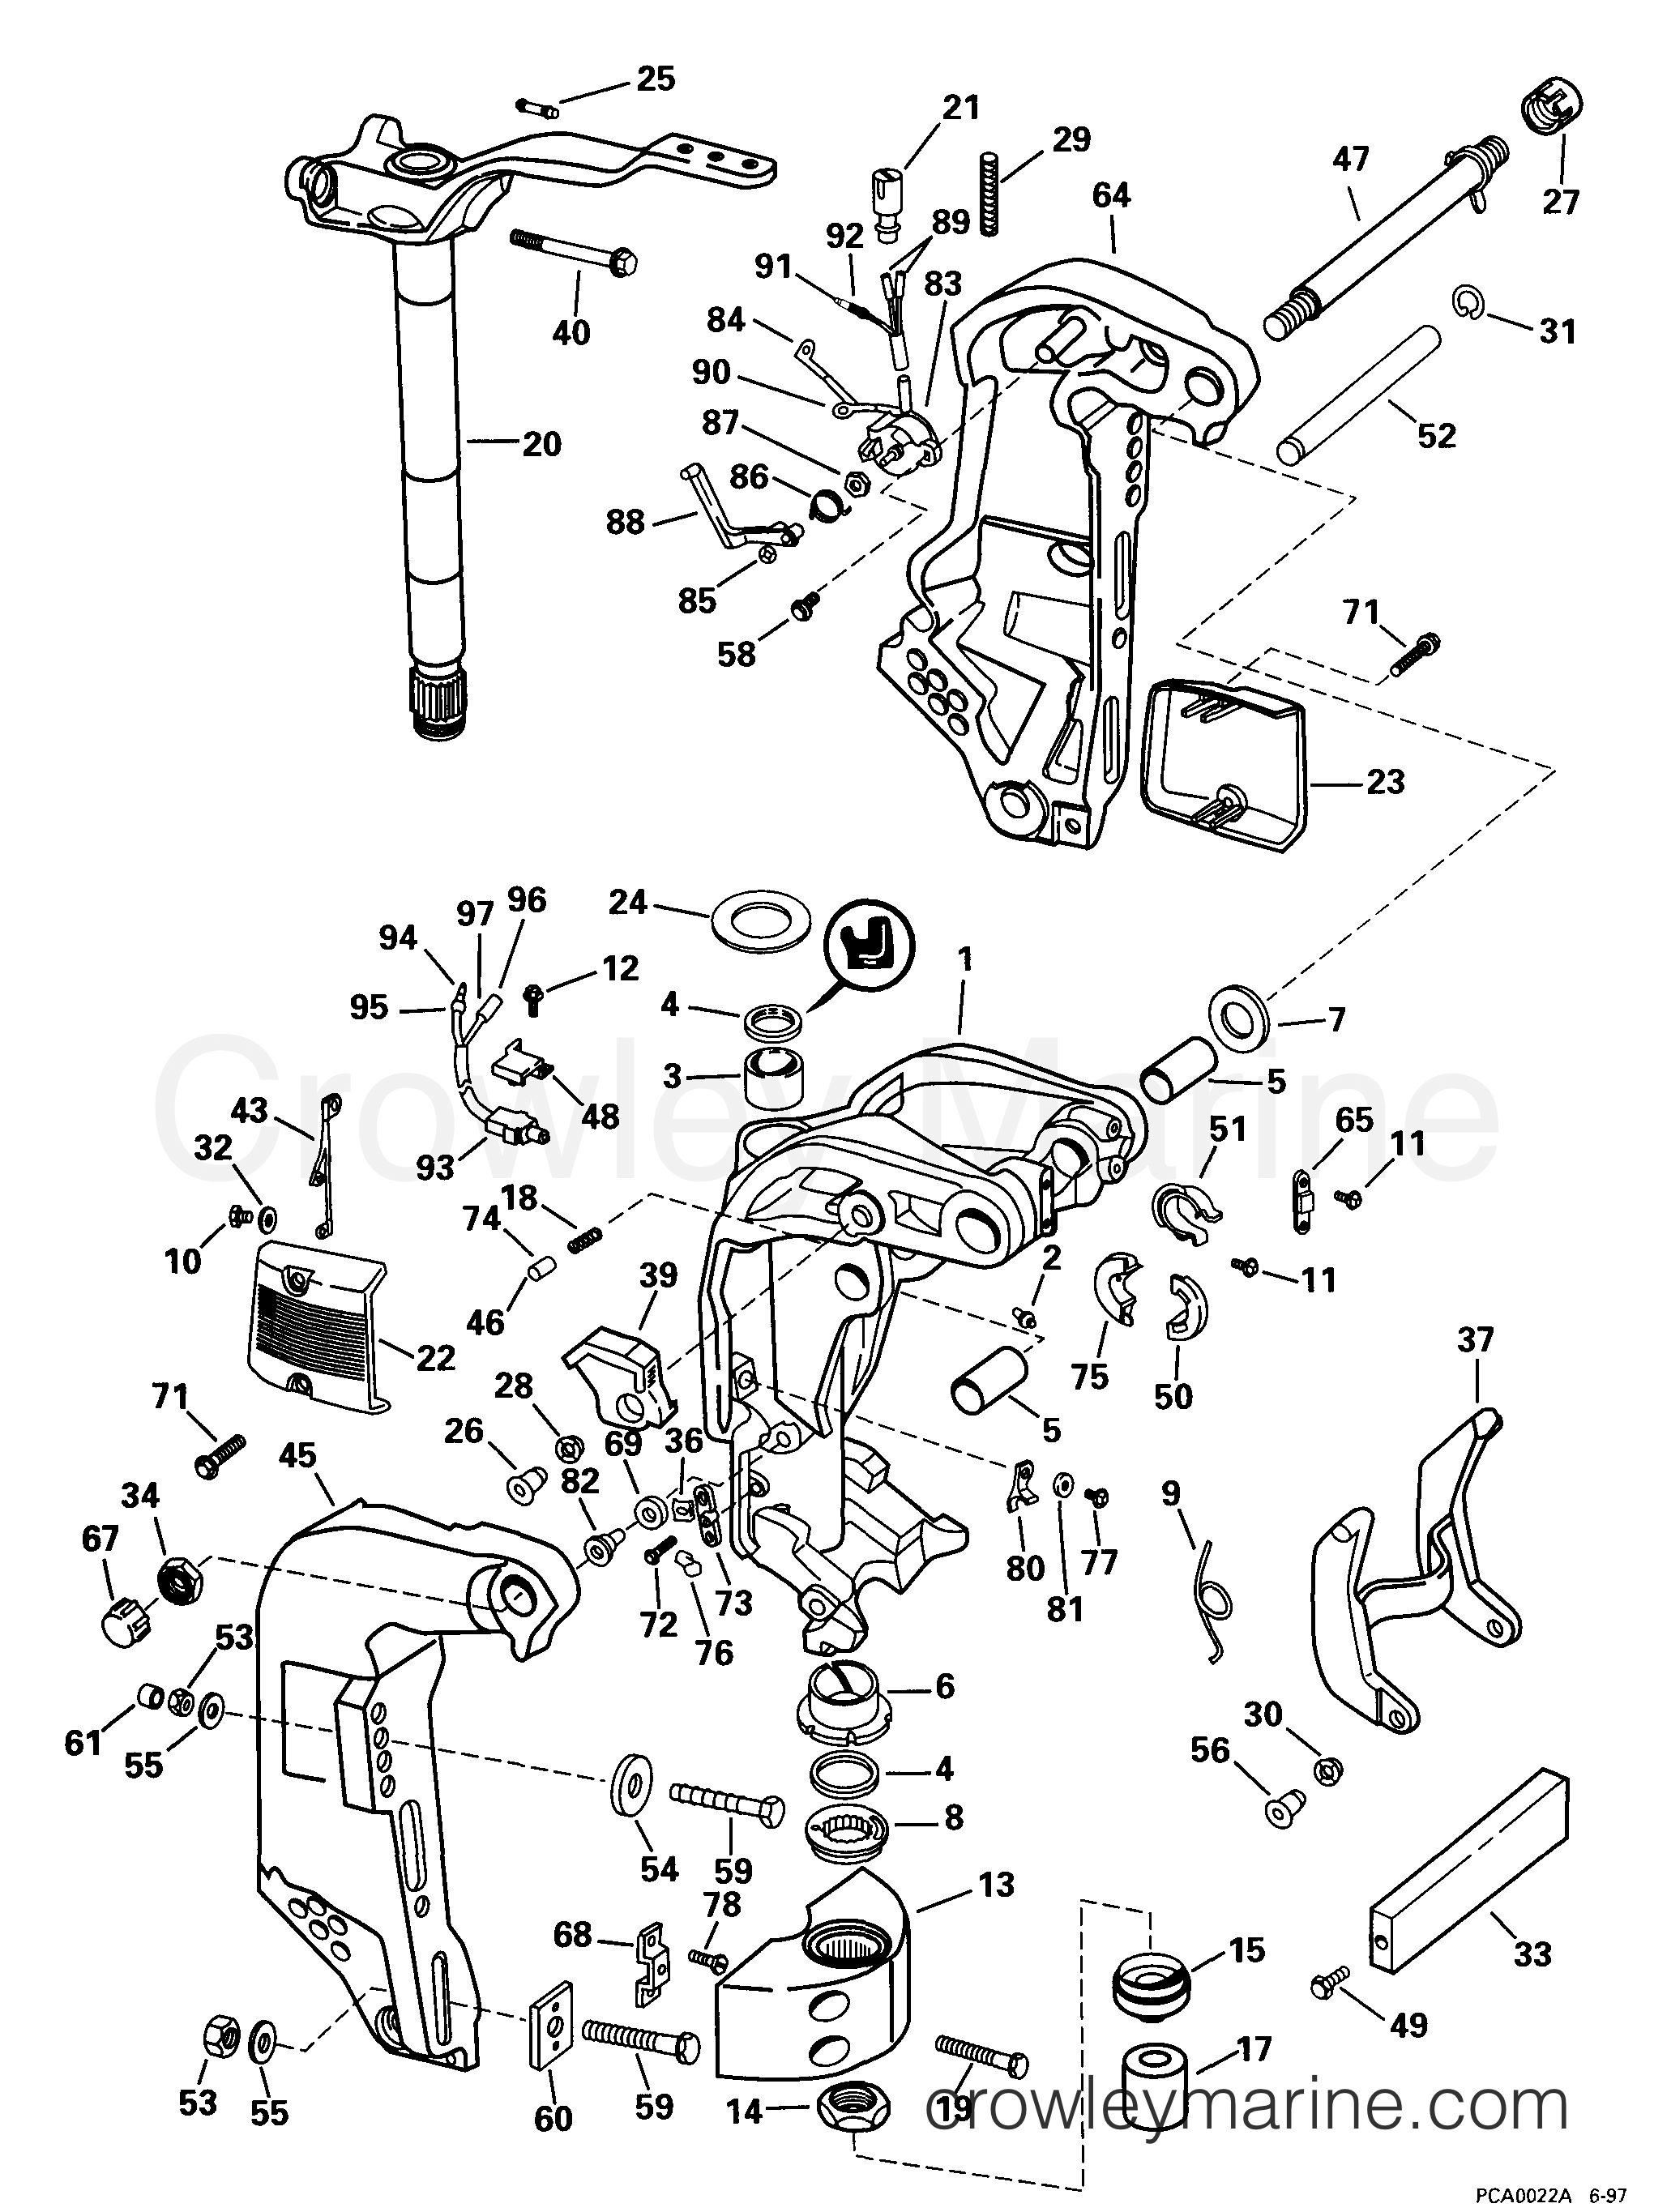 diagram 1999 mercury 150 outboard